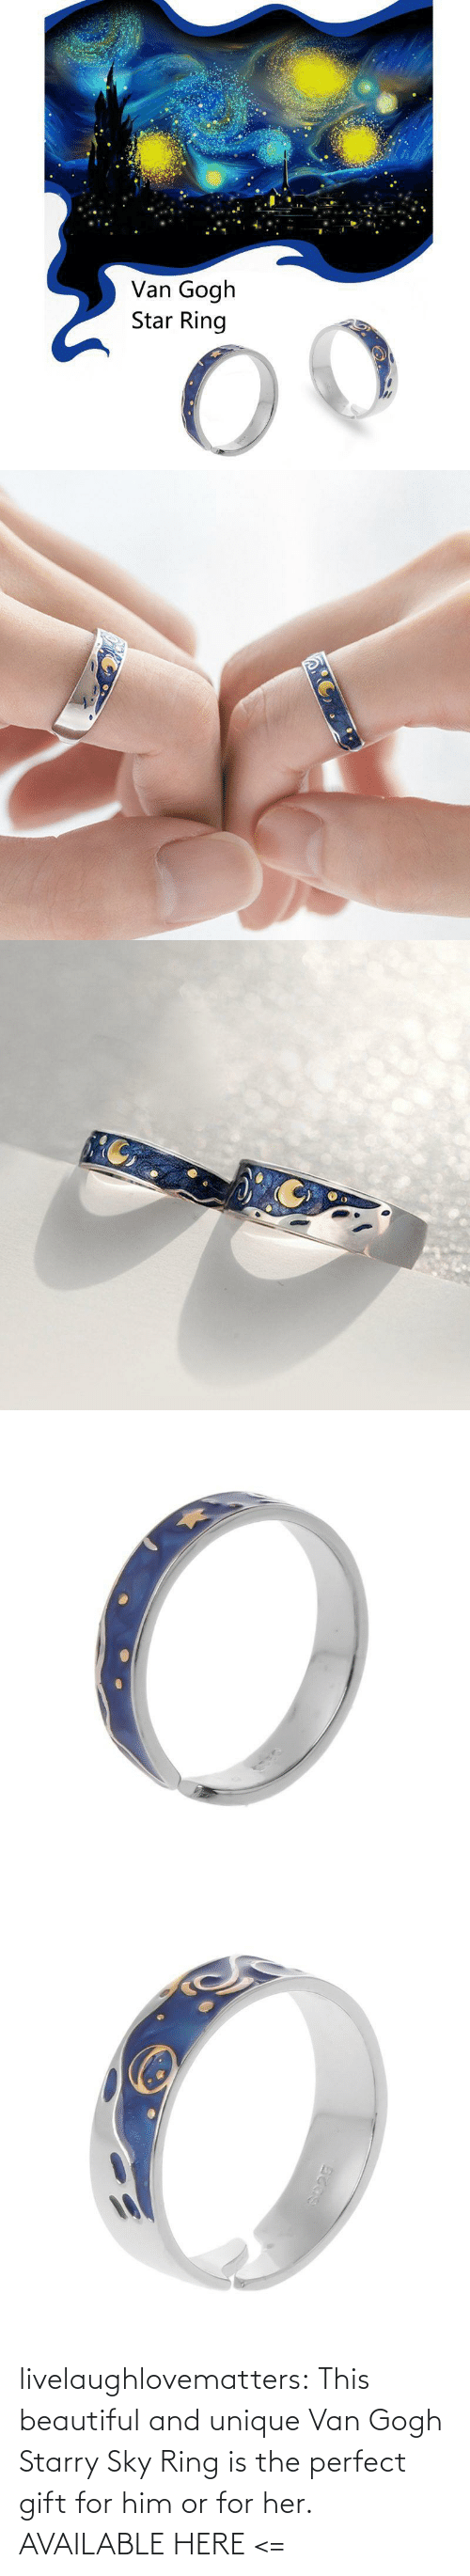 sky: livelaughlovematters:  This beautiful and unique Van Gogh Starry Sky Ring is the perfect gift for him or for her. AVAILABLE HERE <=